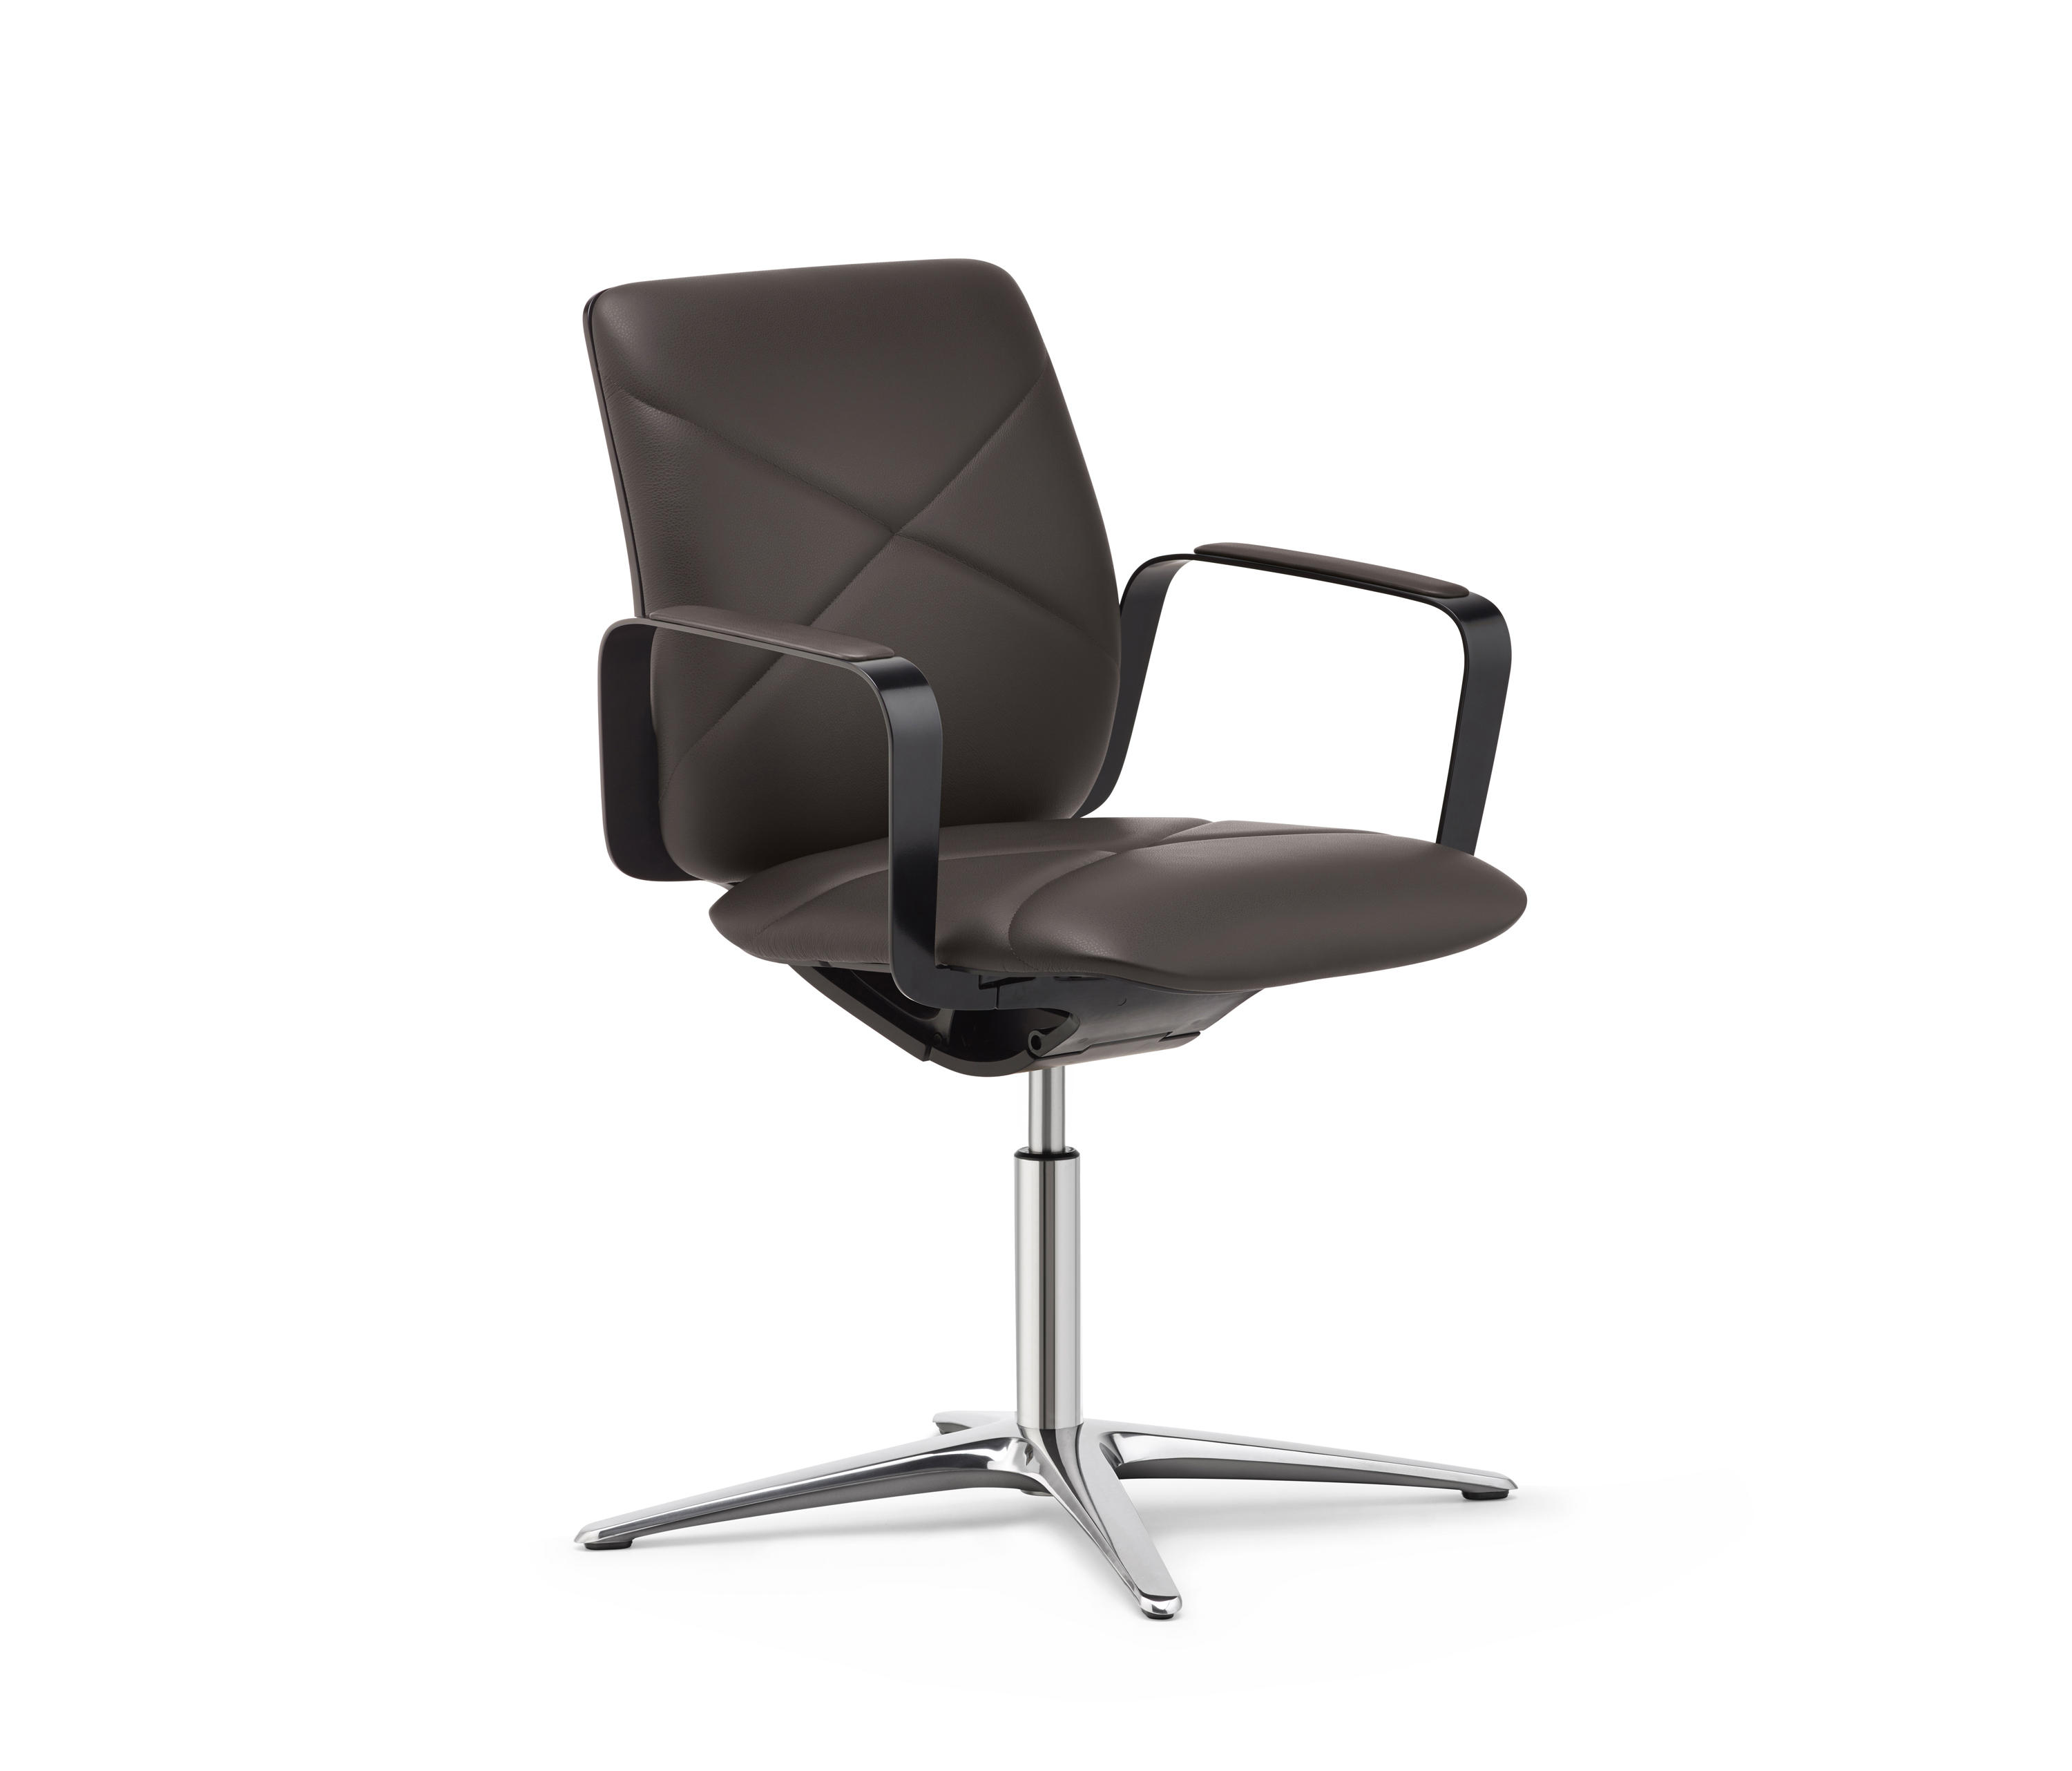 Gut ConWork Conference Swivel Chair By Klöber | Chairs